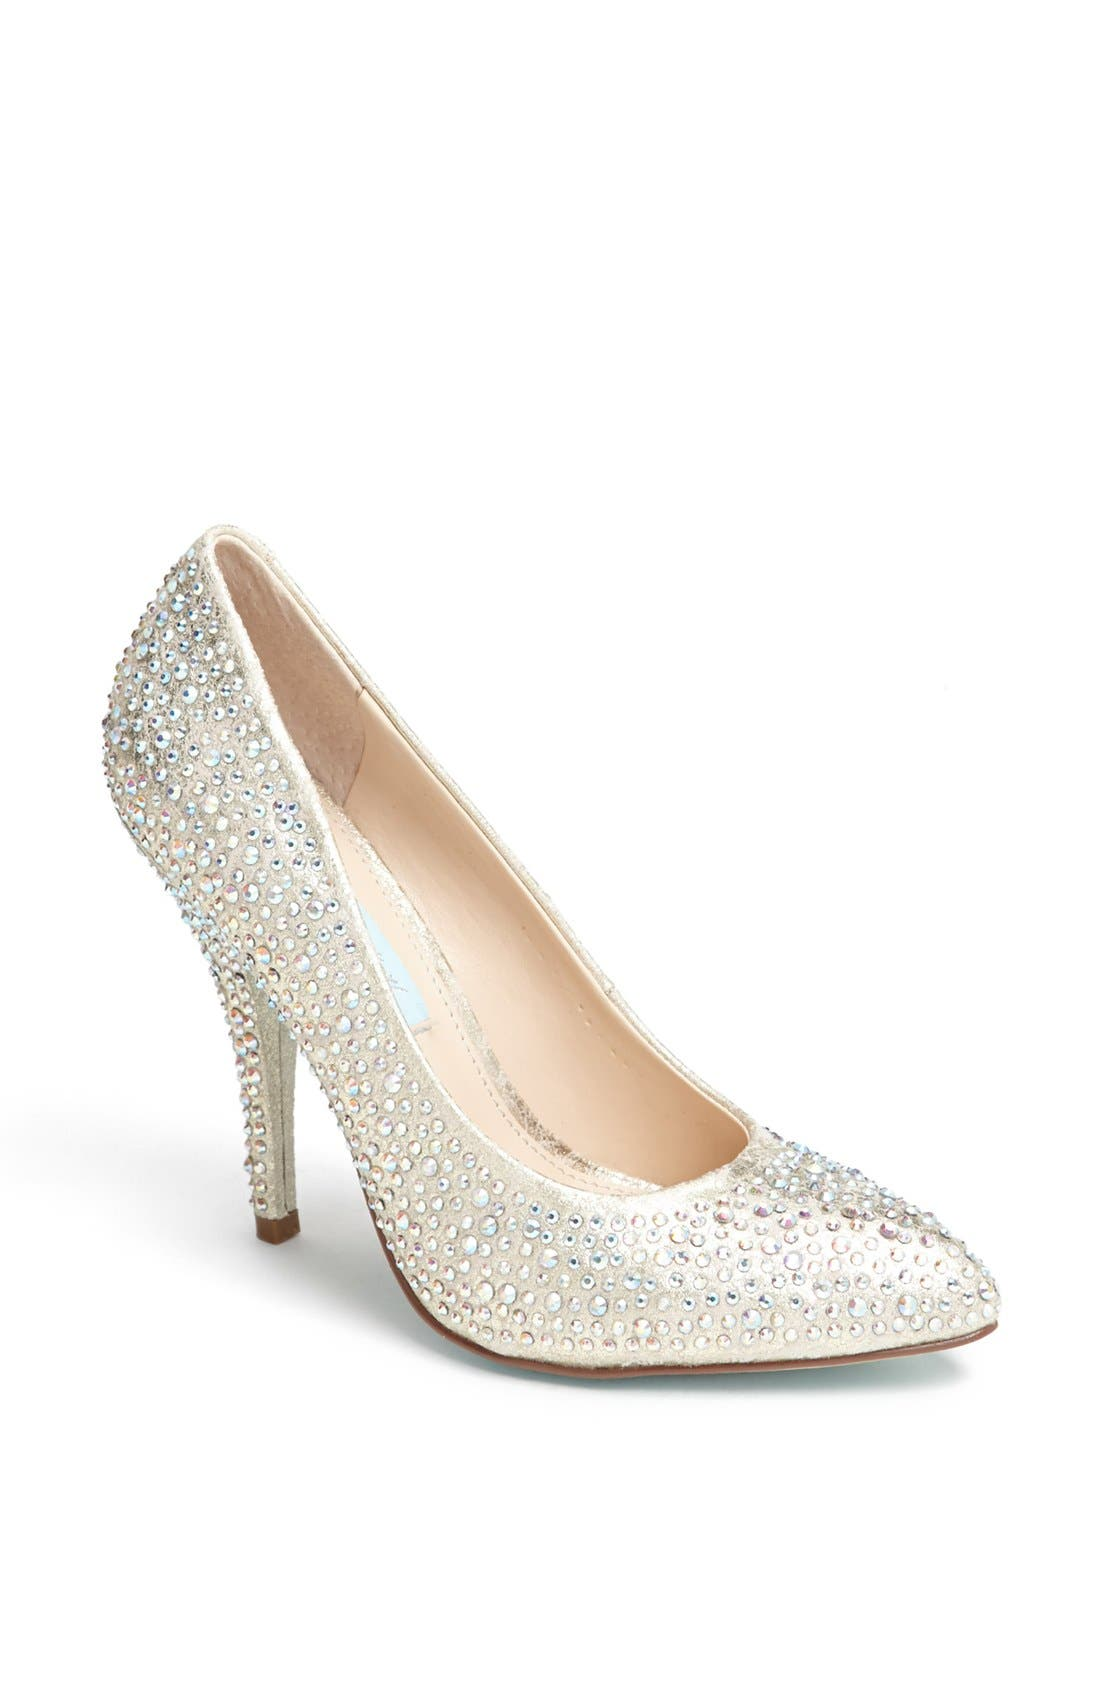 Alternate Image 1 Selected - Blue by Betsey Johnson 'Shine' Pointy Toe Pump